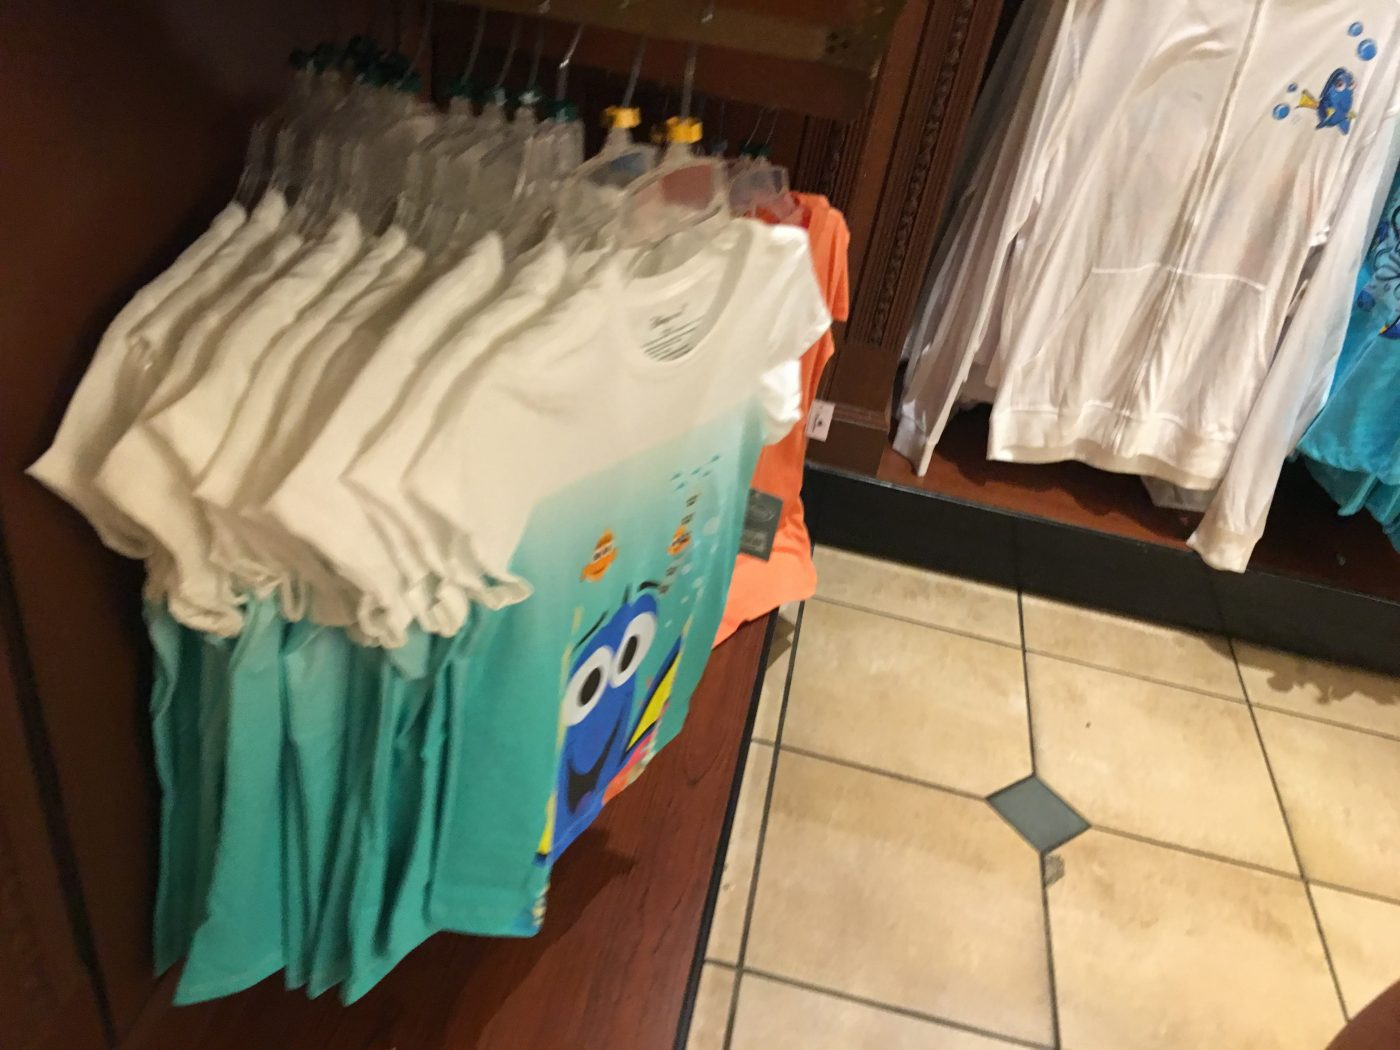 Disney-MagicKingdom-inside giftshop, Dory shirts